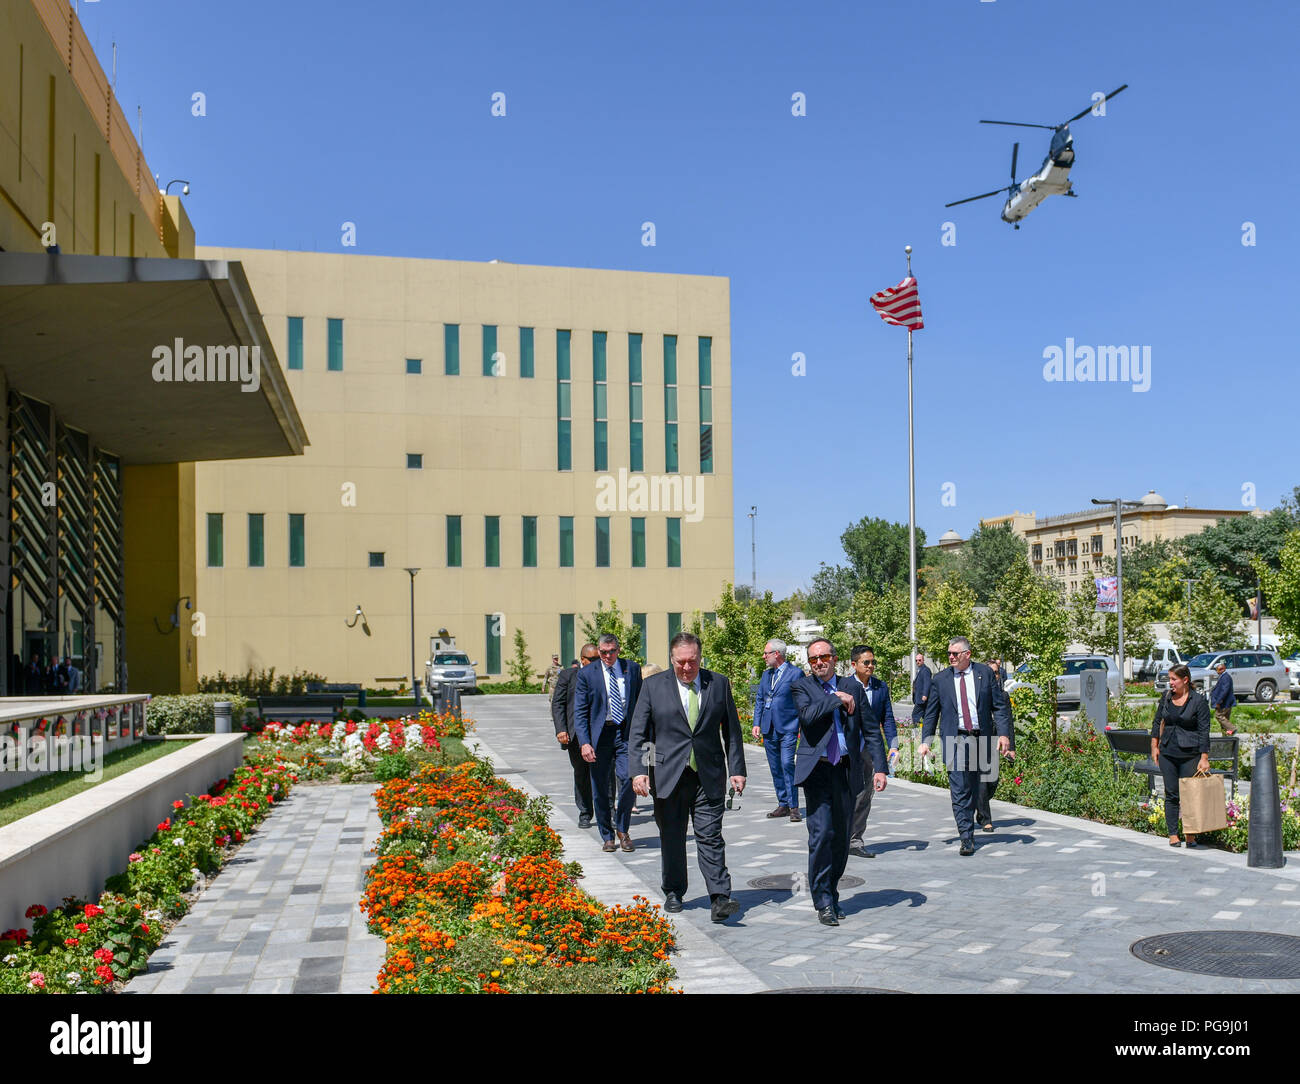 U S Embassy Kabul High Resolution Stock Photography And Images Alamy